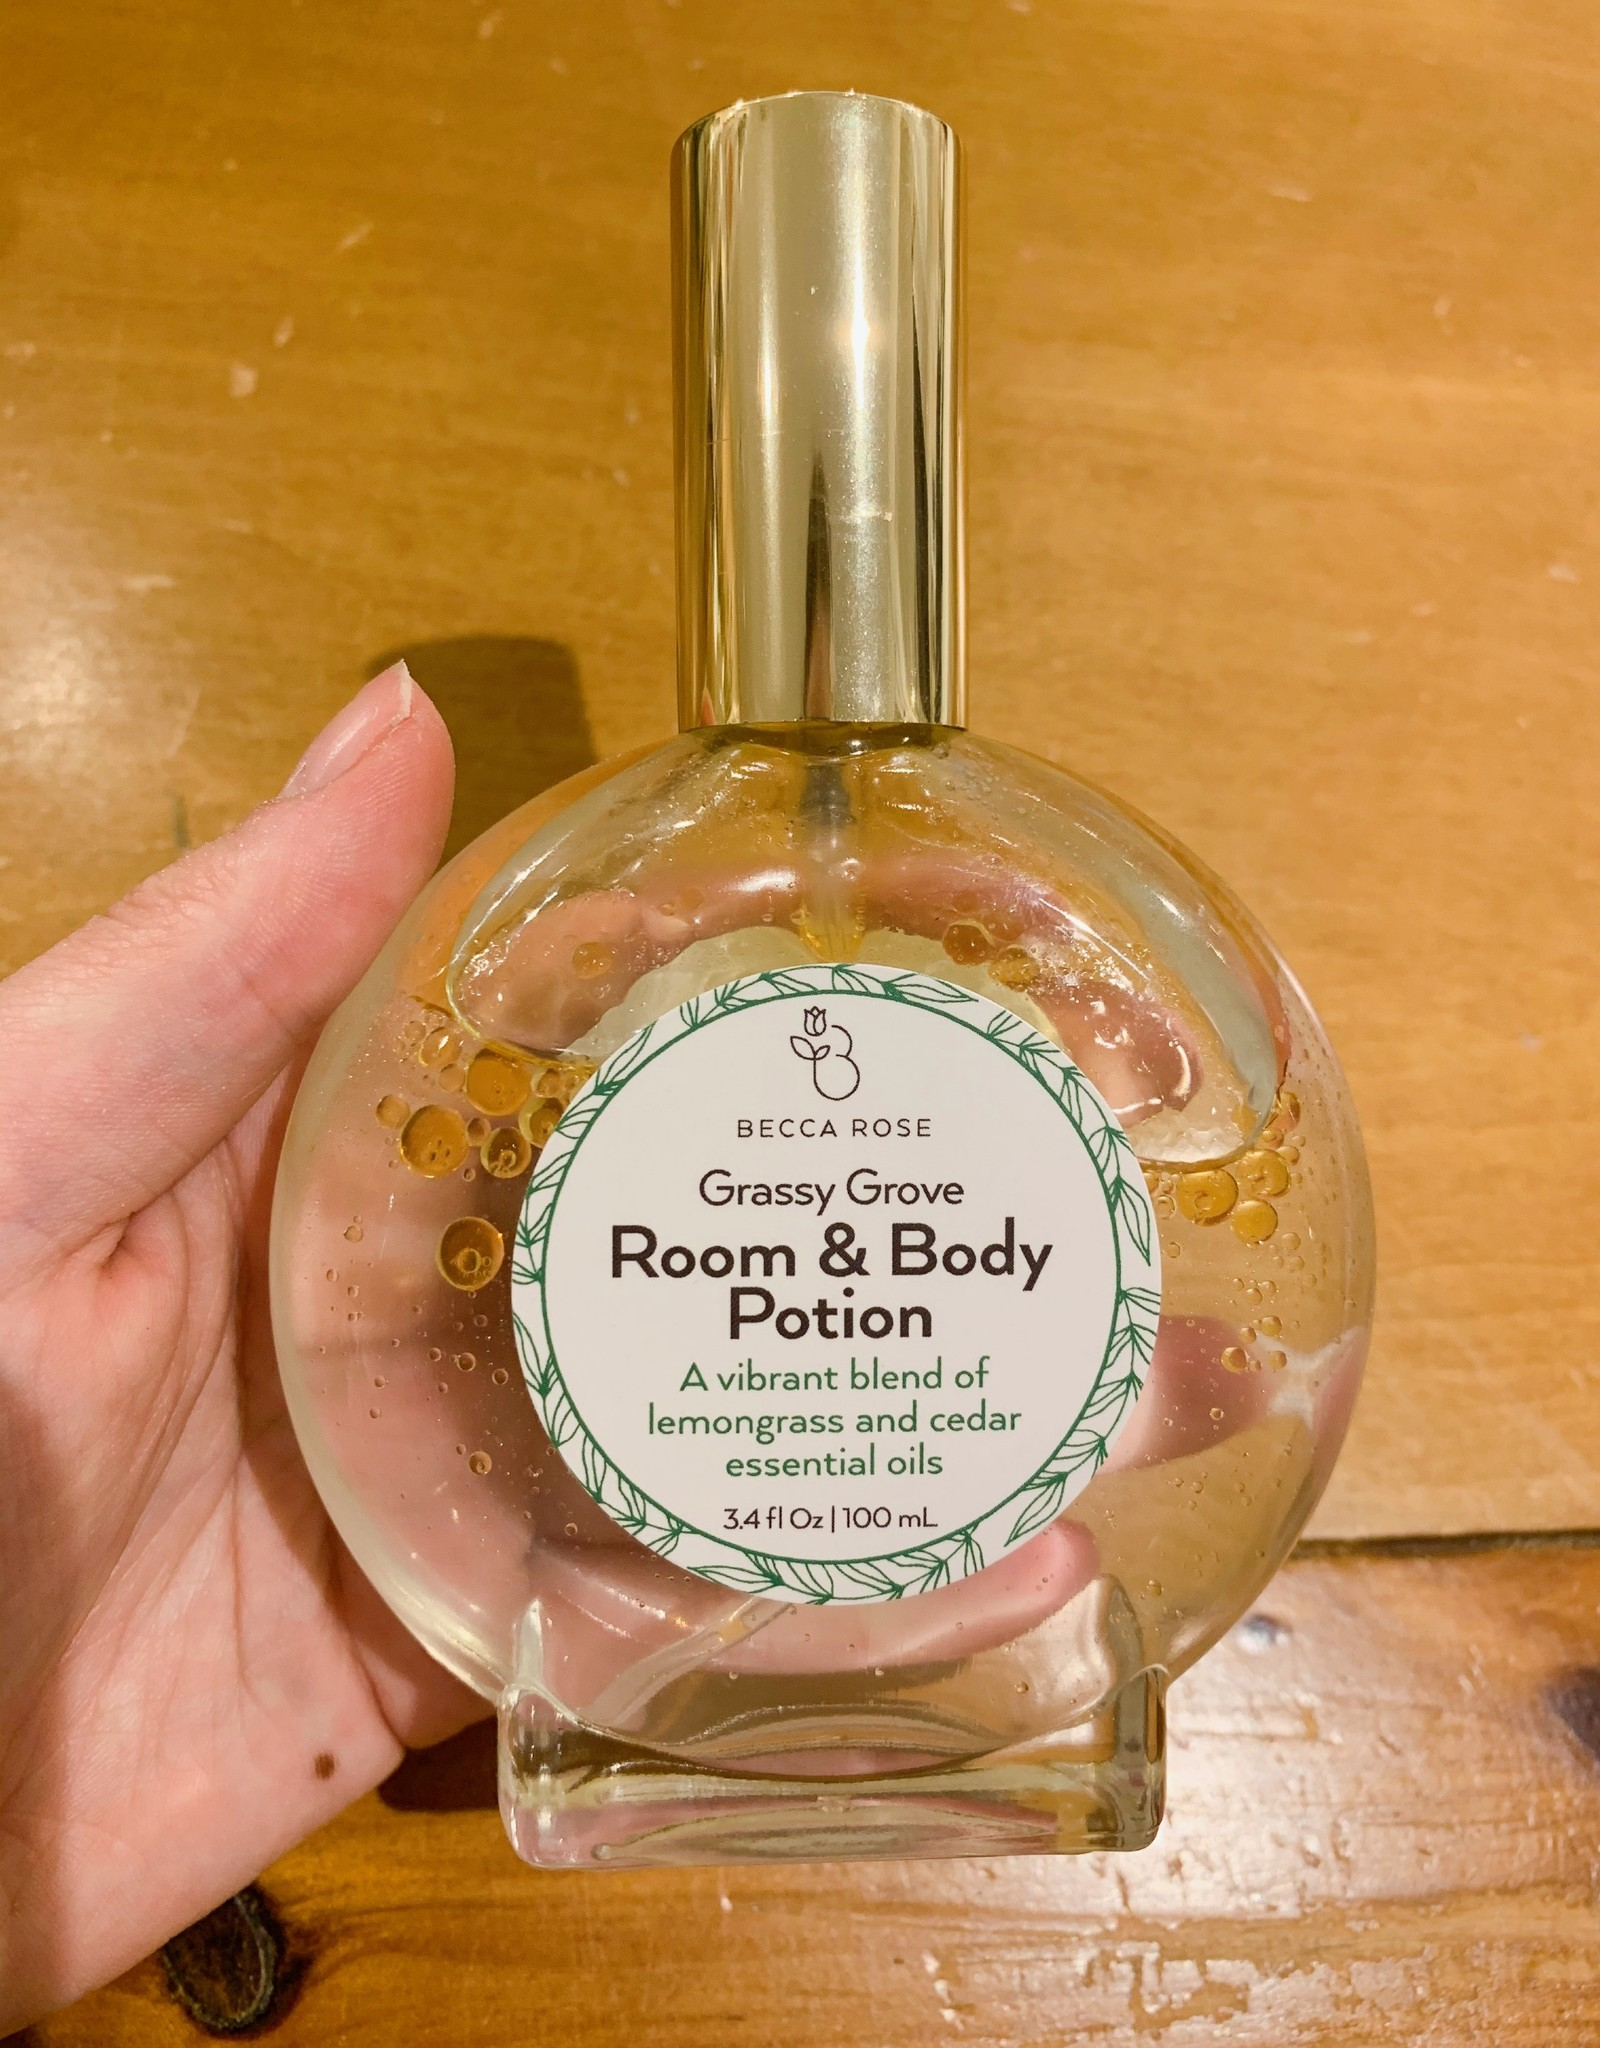 Becca Rose Grassy Grove Room & Body Potion